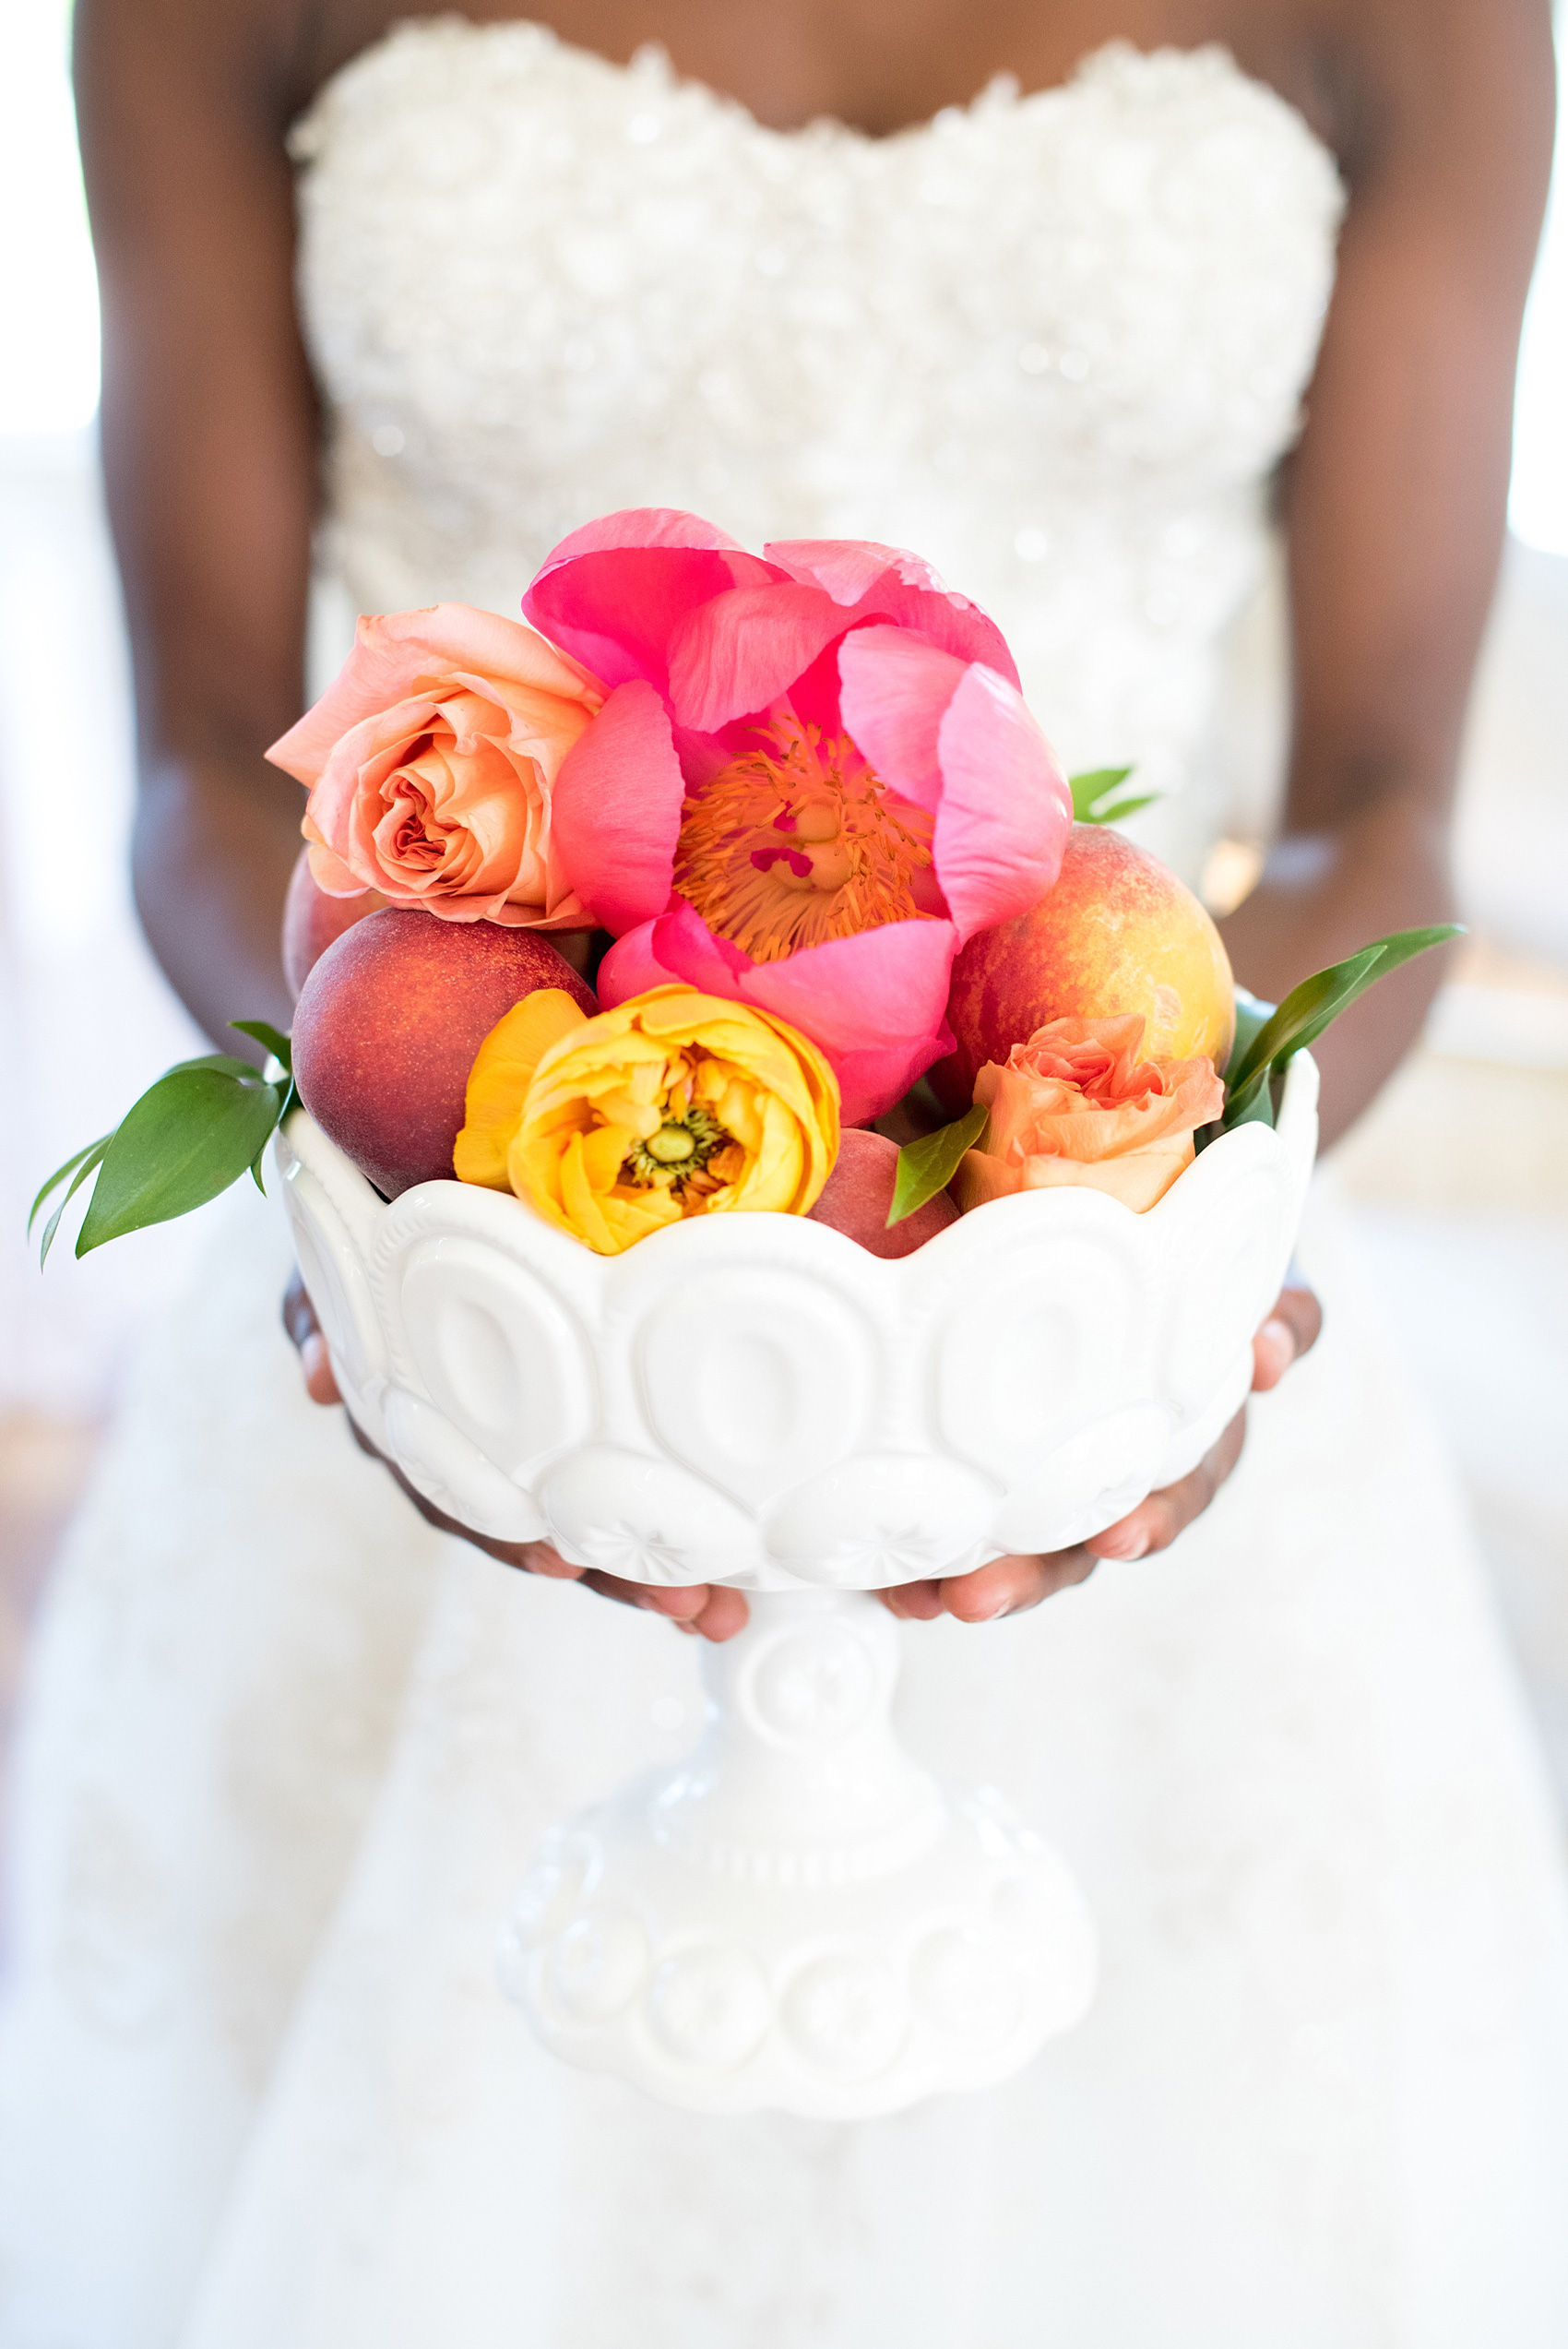 Mikkel Paige Photography photo at The Bradford, NC. Bride holding a milk glass vase full of pink peonies, yellow ranunculus and peaches.